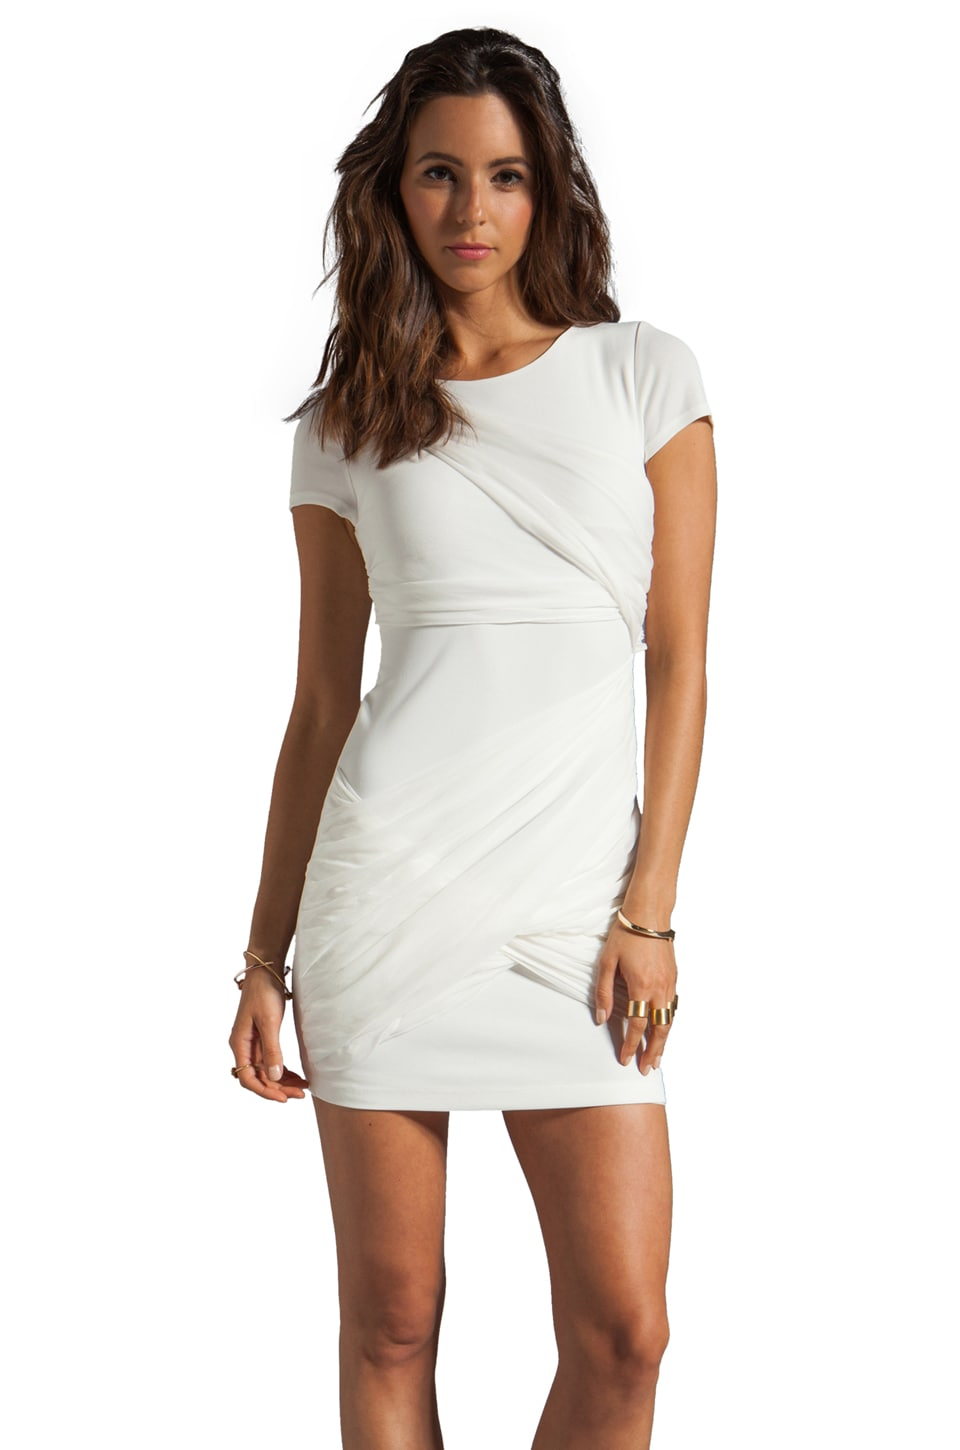 Alice + Olivia Short Sleeve Goddess Dress in Cream